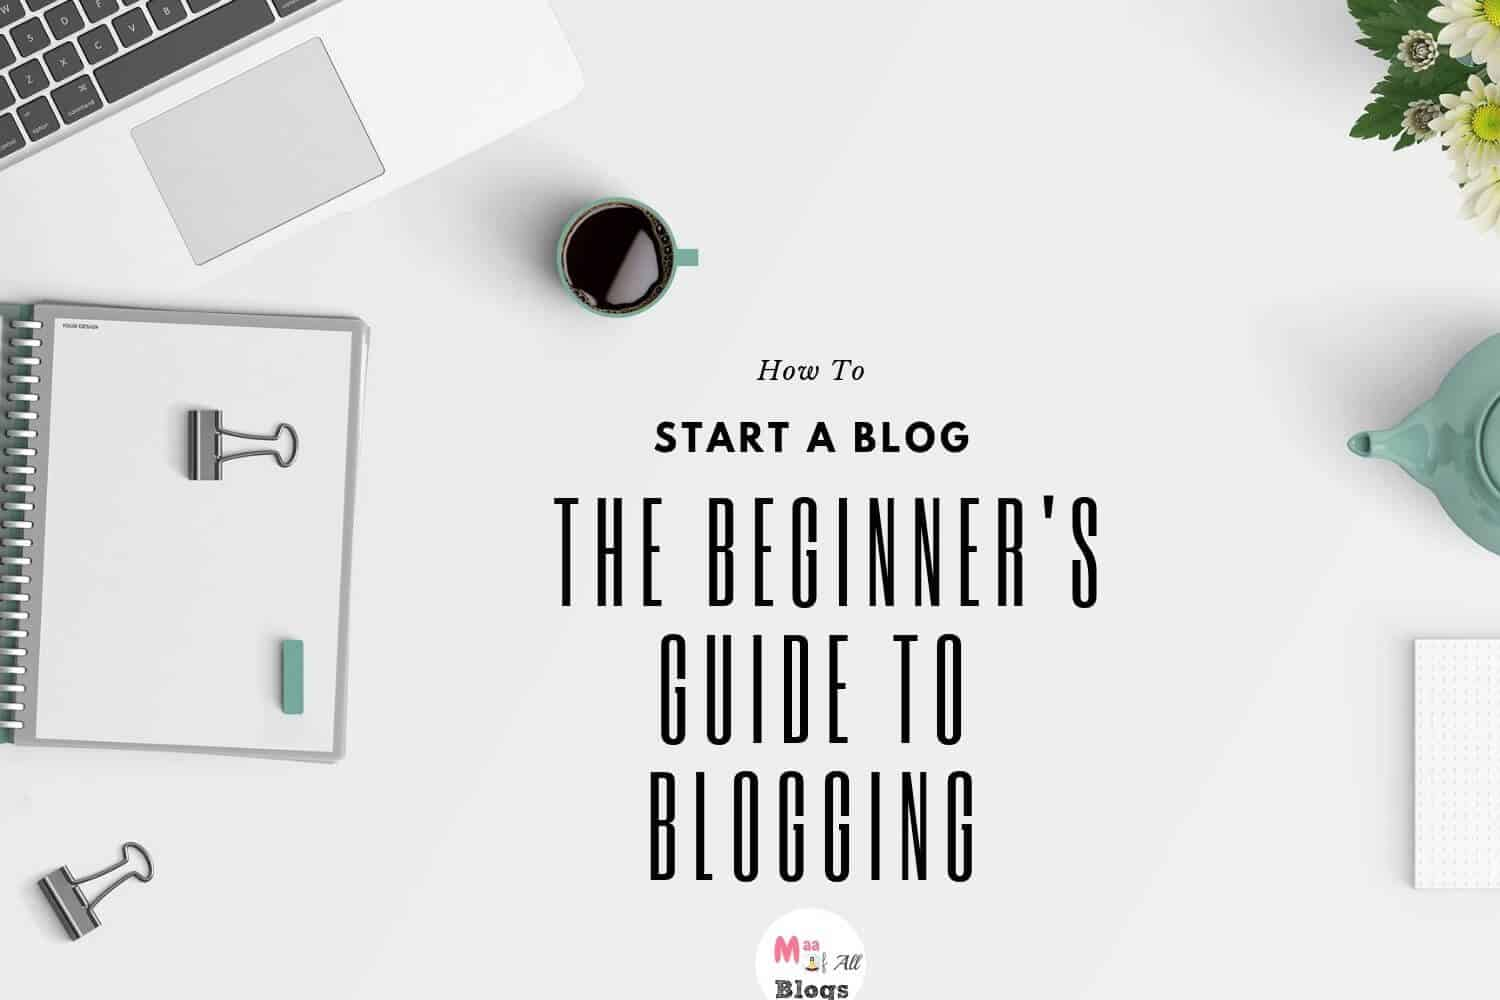 How To Start A Blog- The Beginner